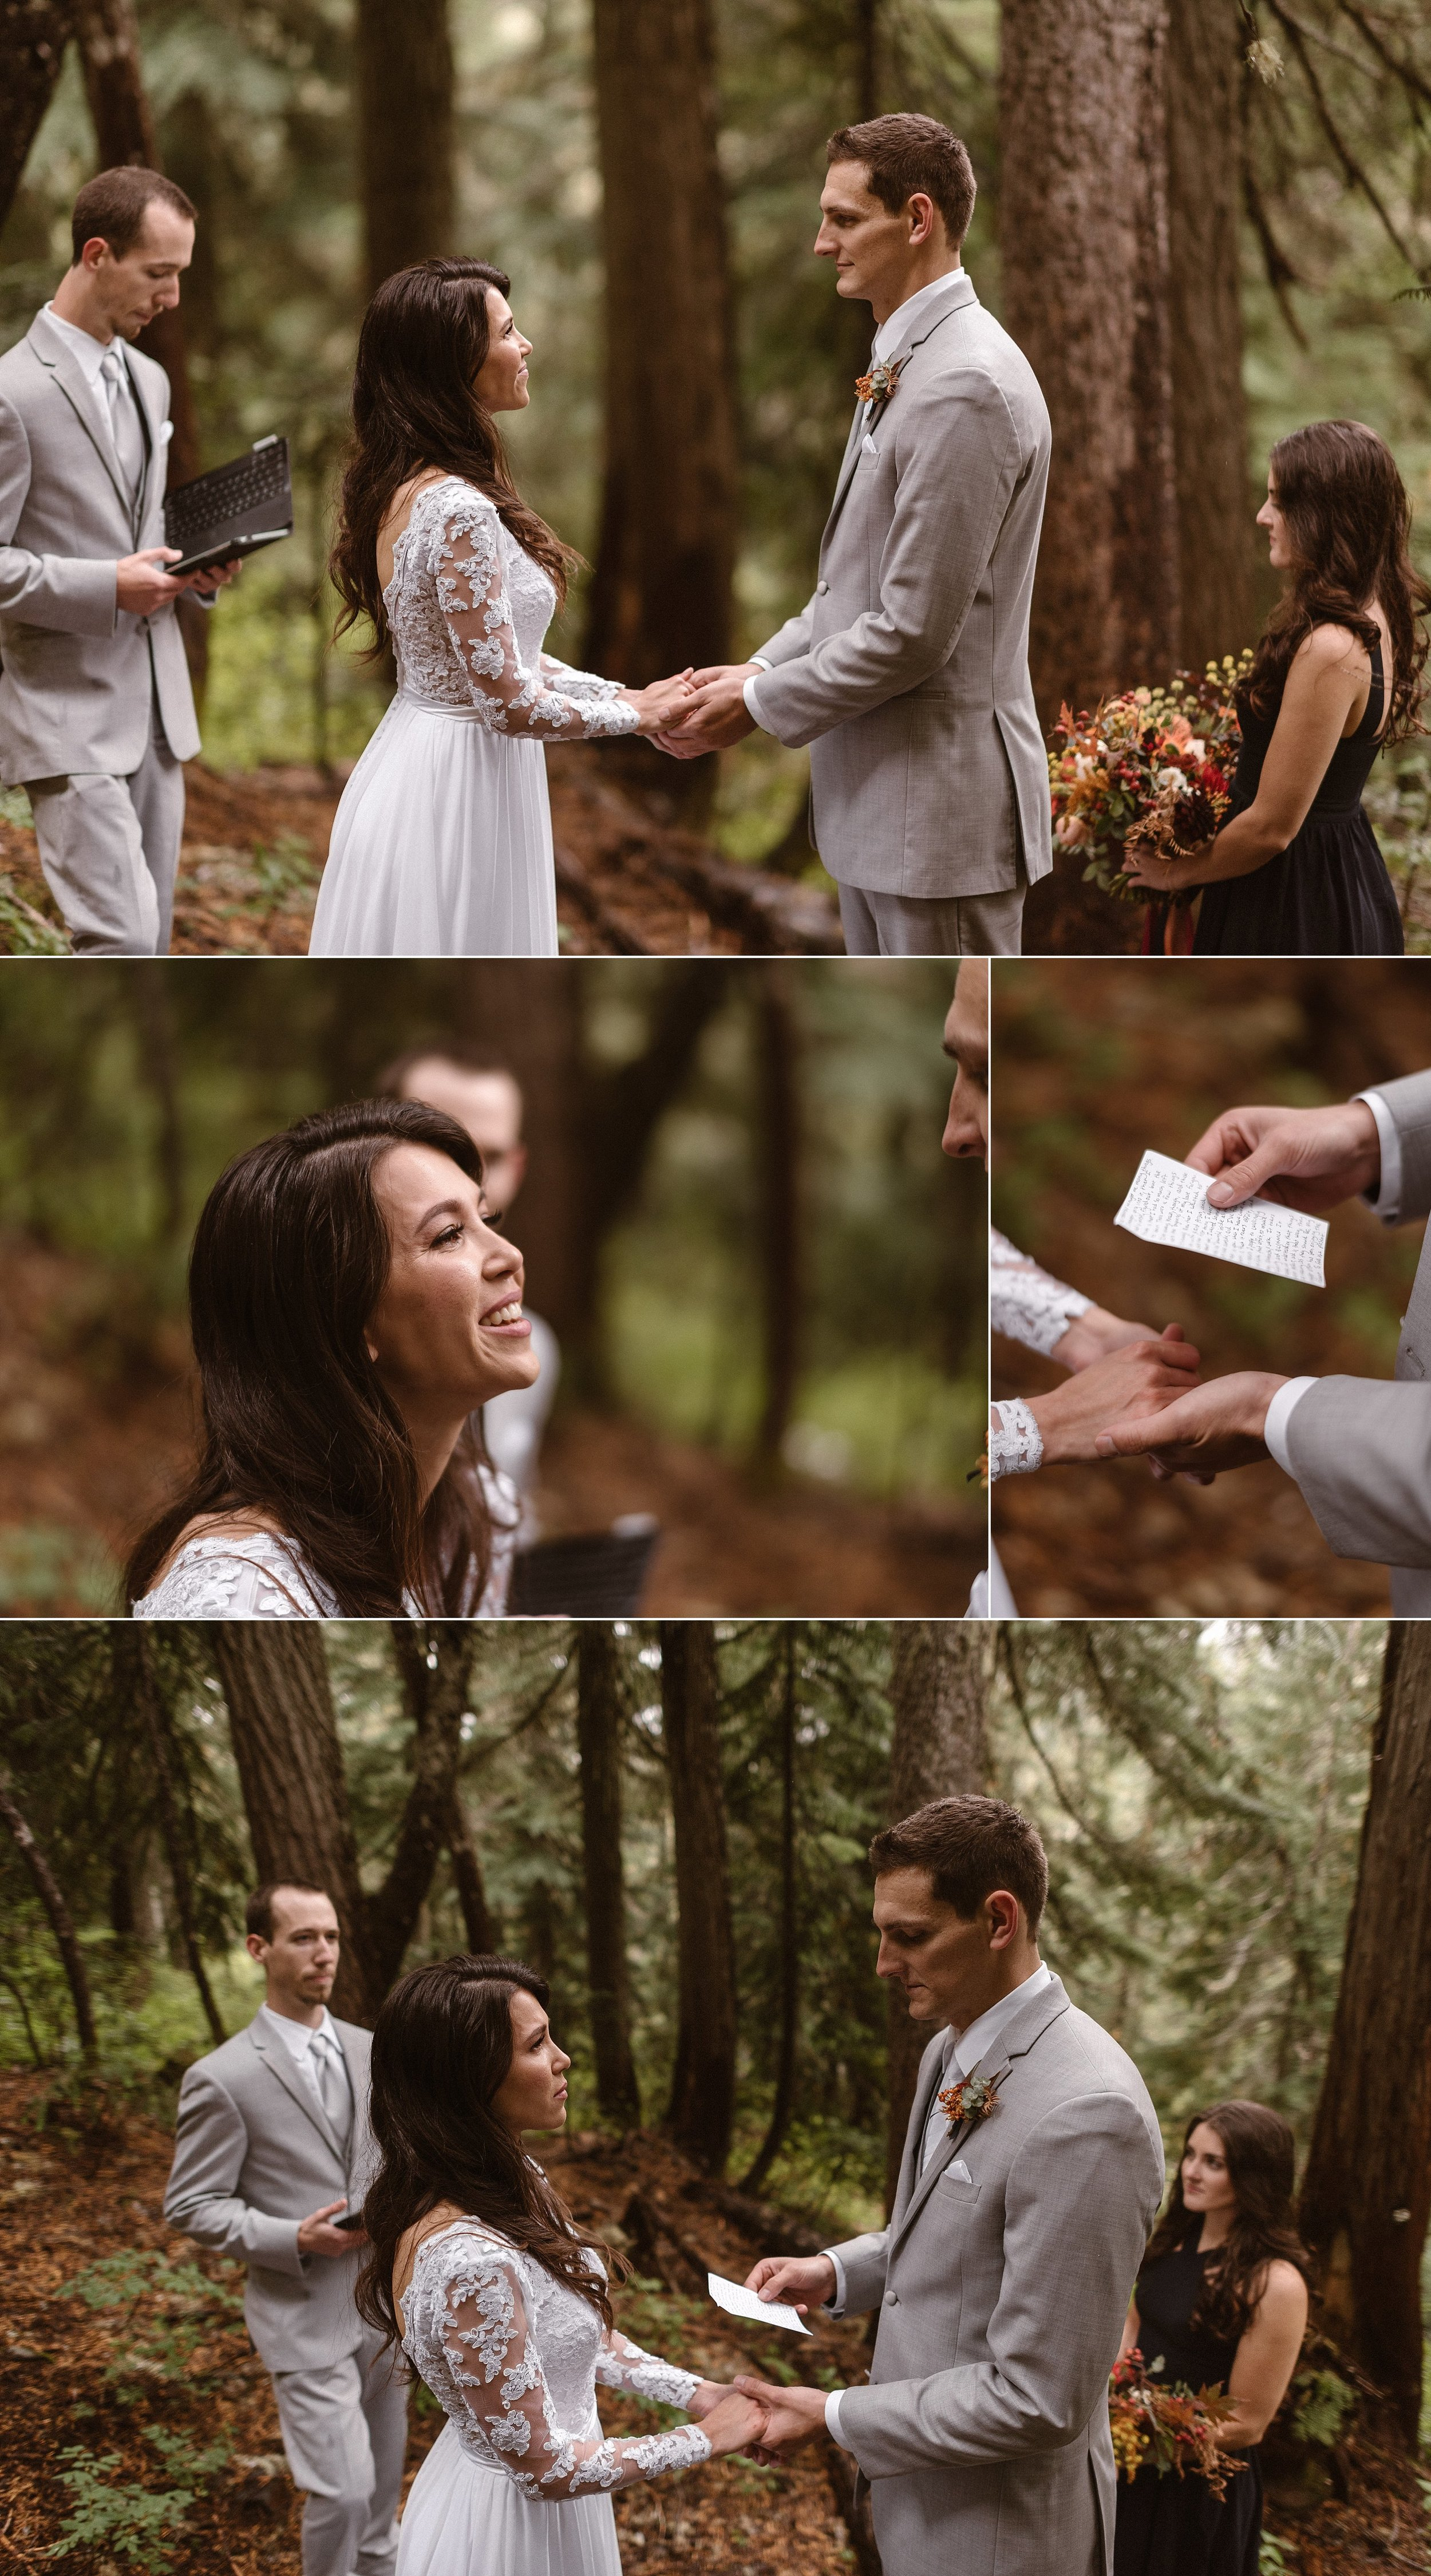 Grant pulled out his hand written wedding vows from his pocket. As he began with jokes Resa couldn't help but giggle at the memories of all they'd gone through. As he ended he told Resa of the promises of the life that he would make sure they would live. Photos of this emotional intimate Mount Rainier National Park forest wedding by traveling elopement photographer Maddie Mae.